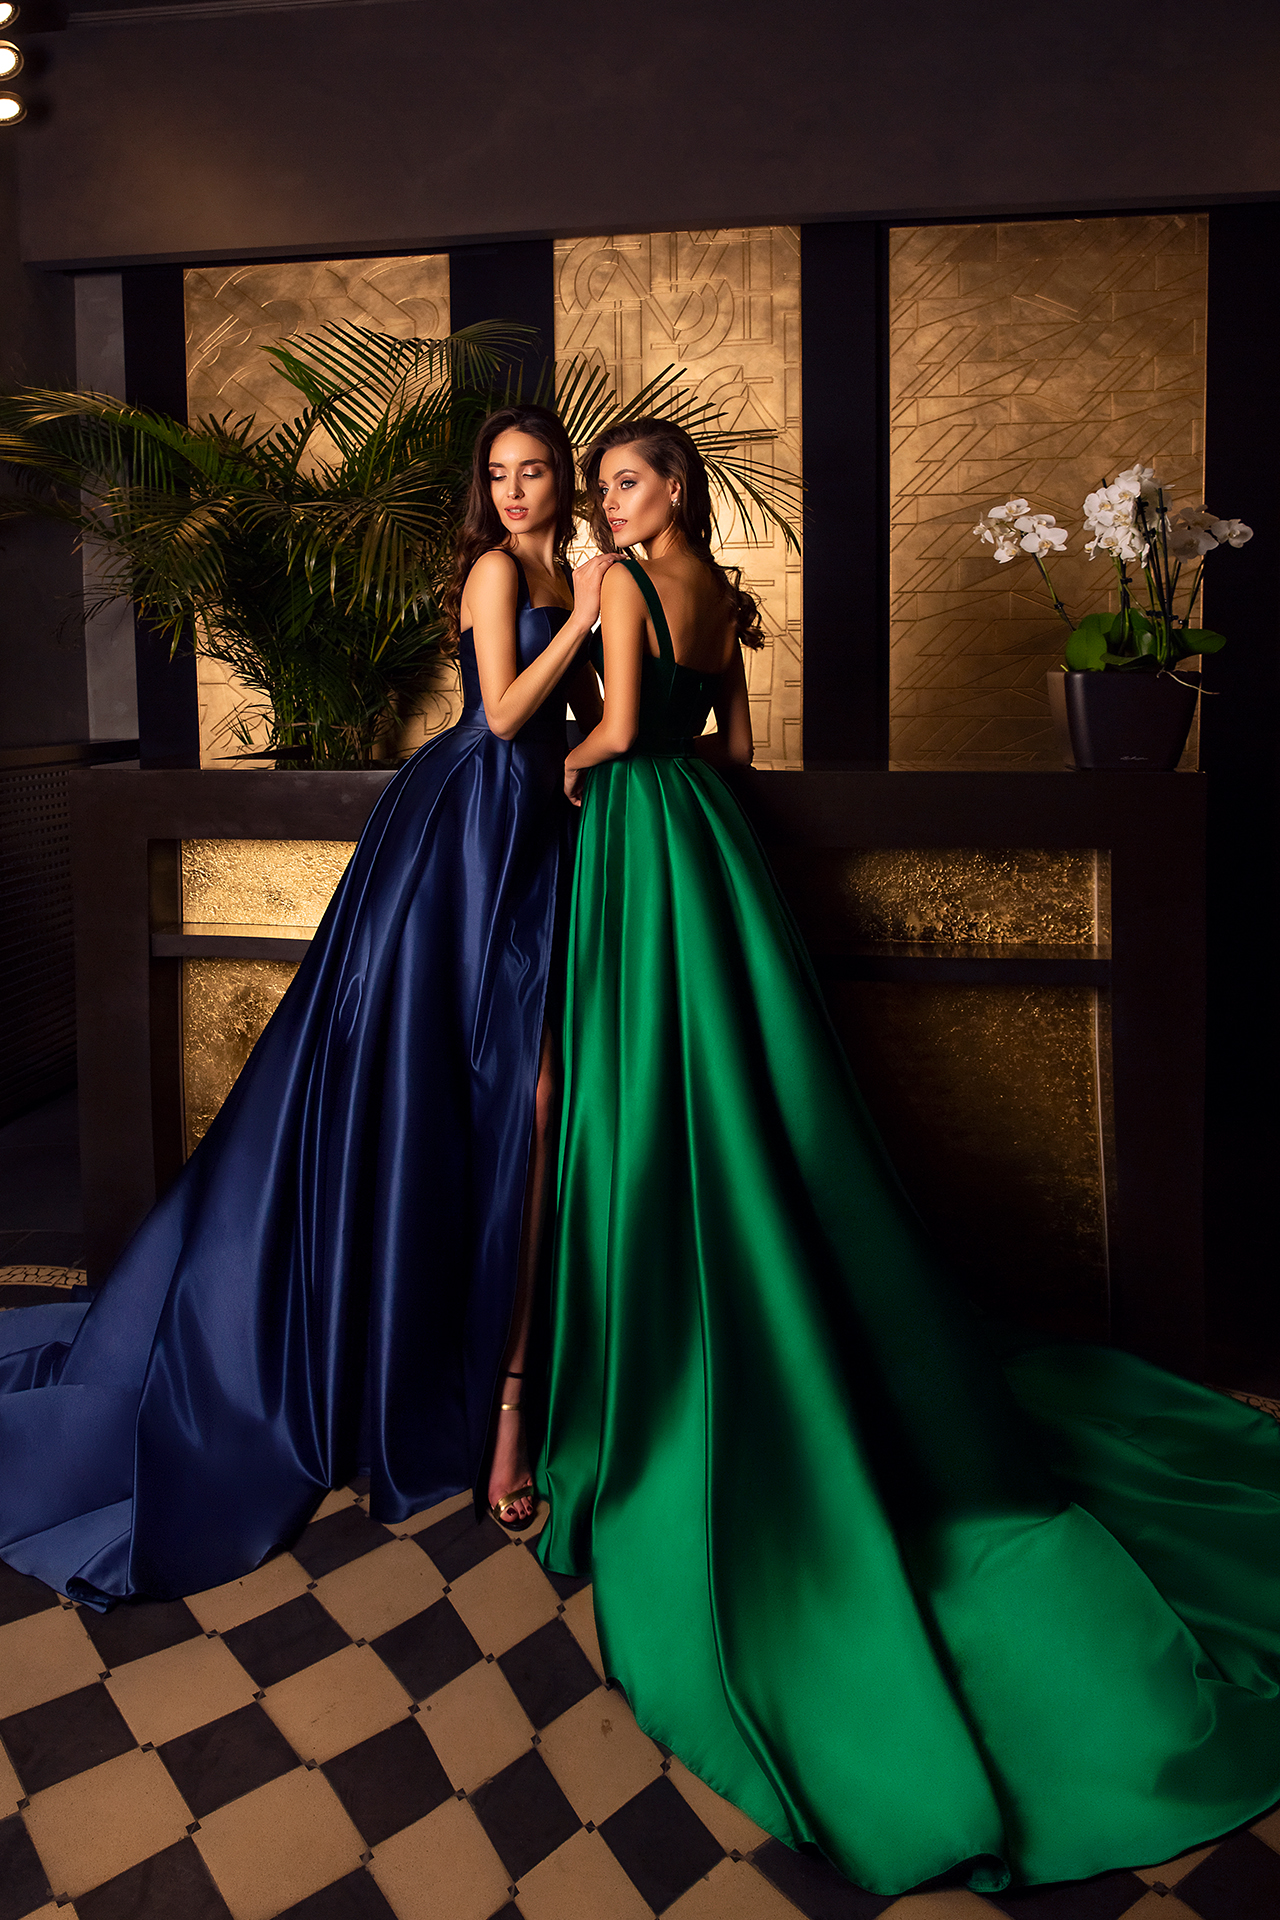 Evening Dresses 1607 Silhouette  A Line  Color  Blue  Green  Neckline  Straight  Sleeves  Wide straps - foto 3